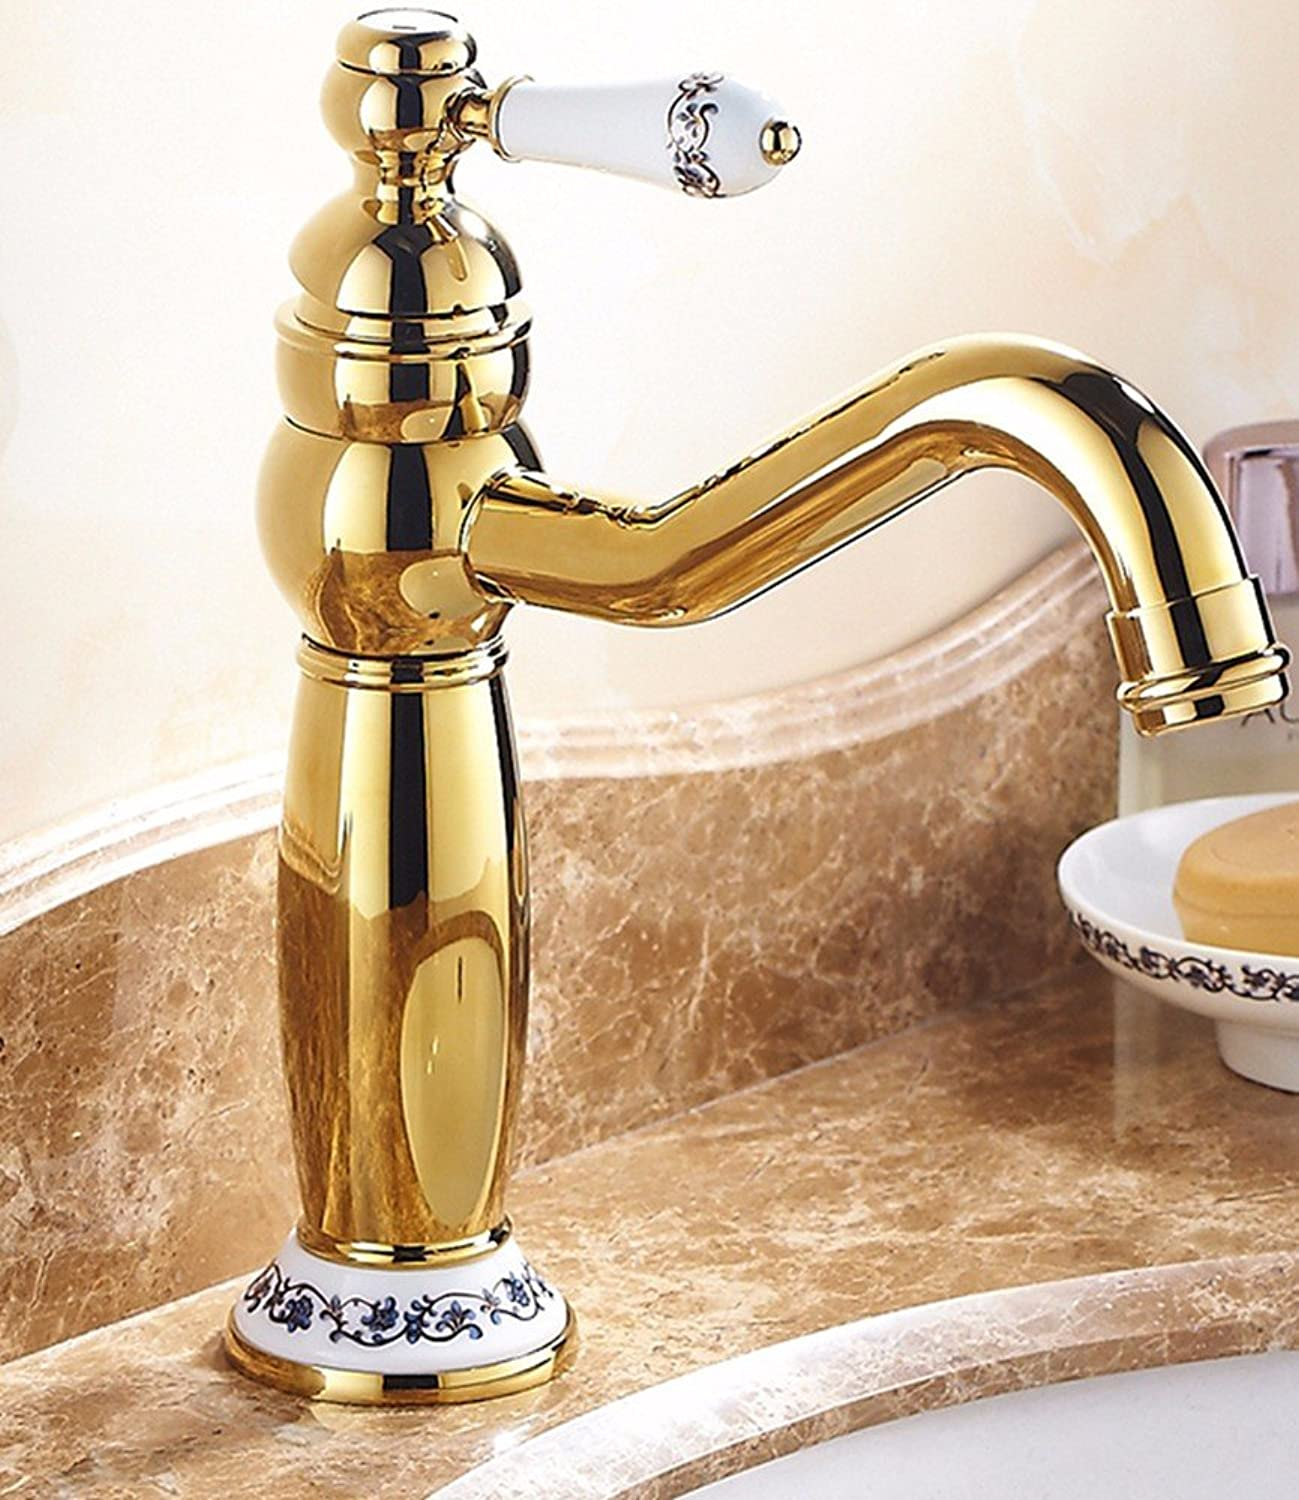 Hlluya Professional Sink Mixer Tap Kitchen Faucet Copper, hot and cold, bathroom, plus high, the basin, gold plated, sink mixer 7